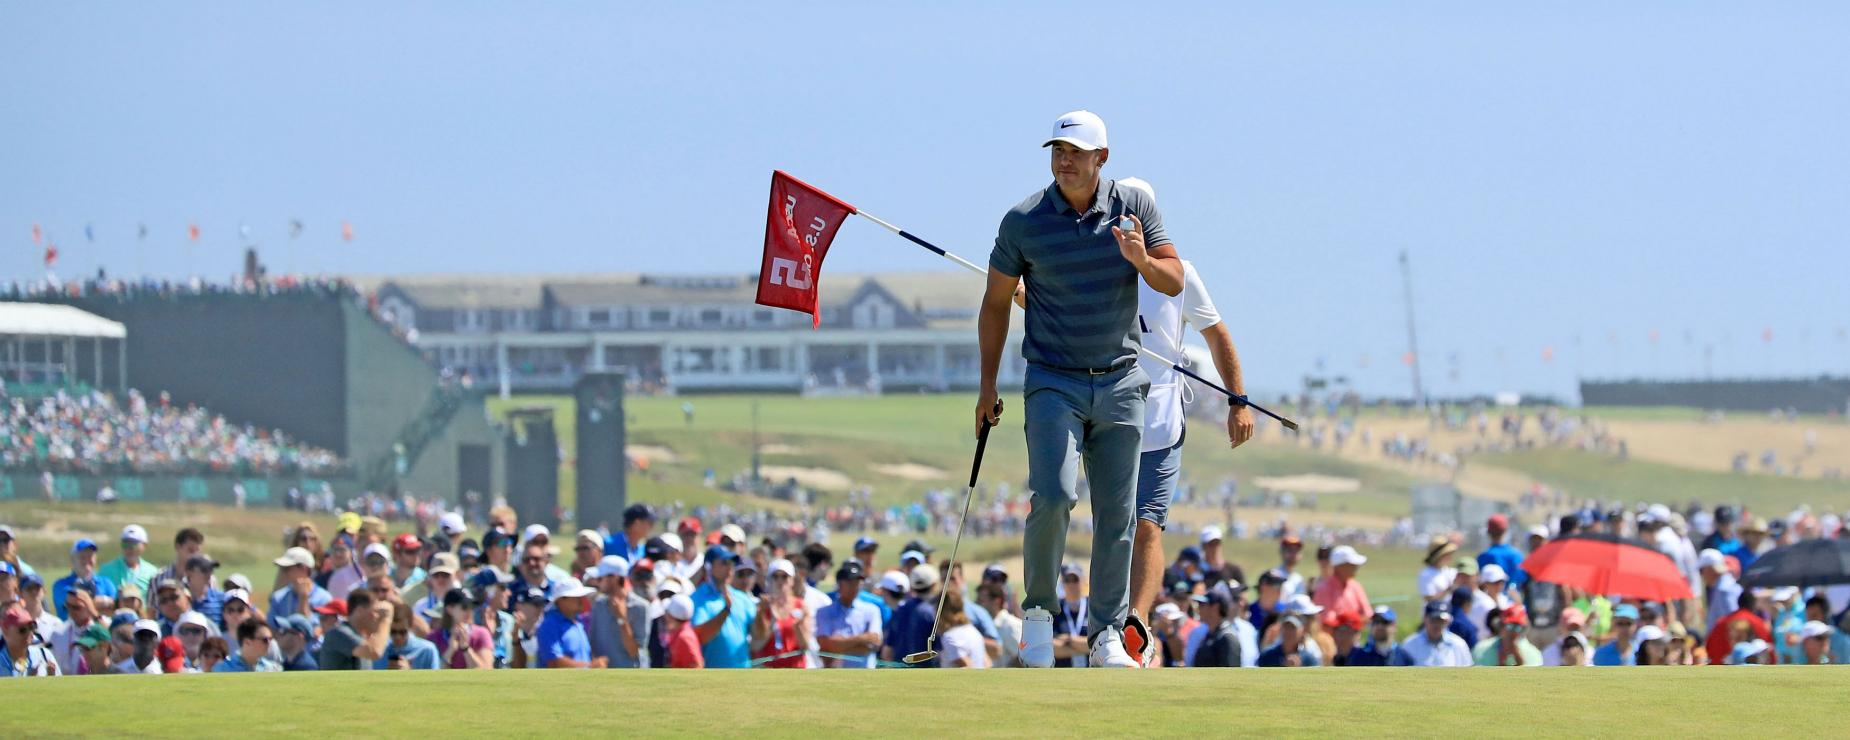 brooks-koepka-newsmakers-shinnecock-wide-shot.jpg